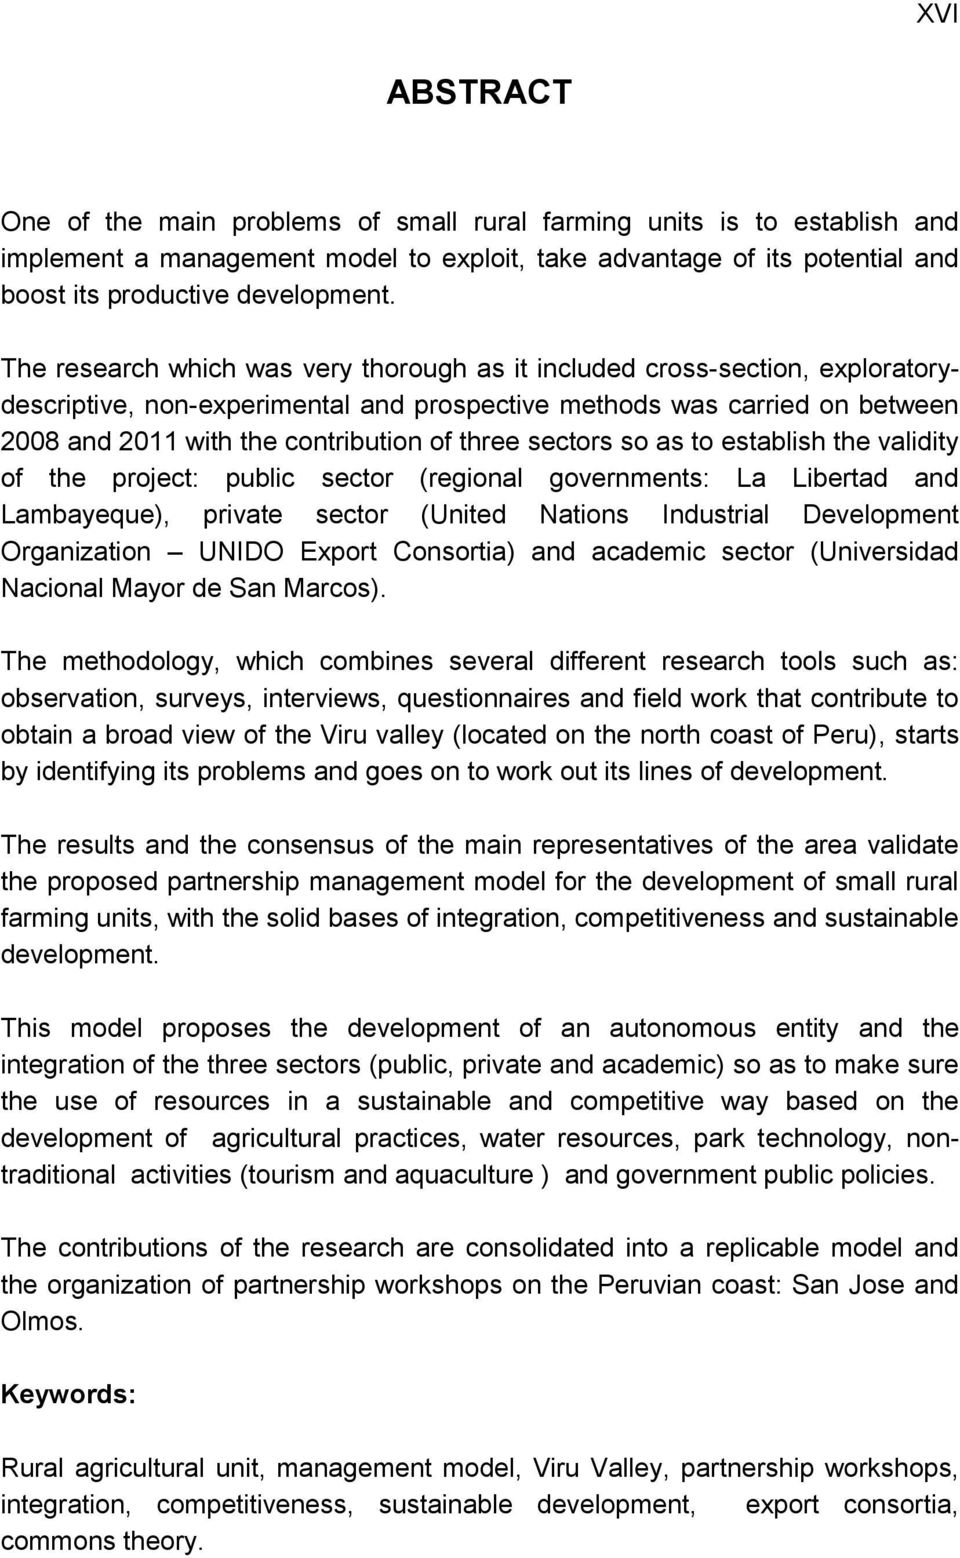 sectors so as to establish the validity of the project: public sector (regional governments: La Libertad and Lambayeque), private sector (United Nations Industrial Development Organization UNIDO